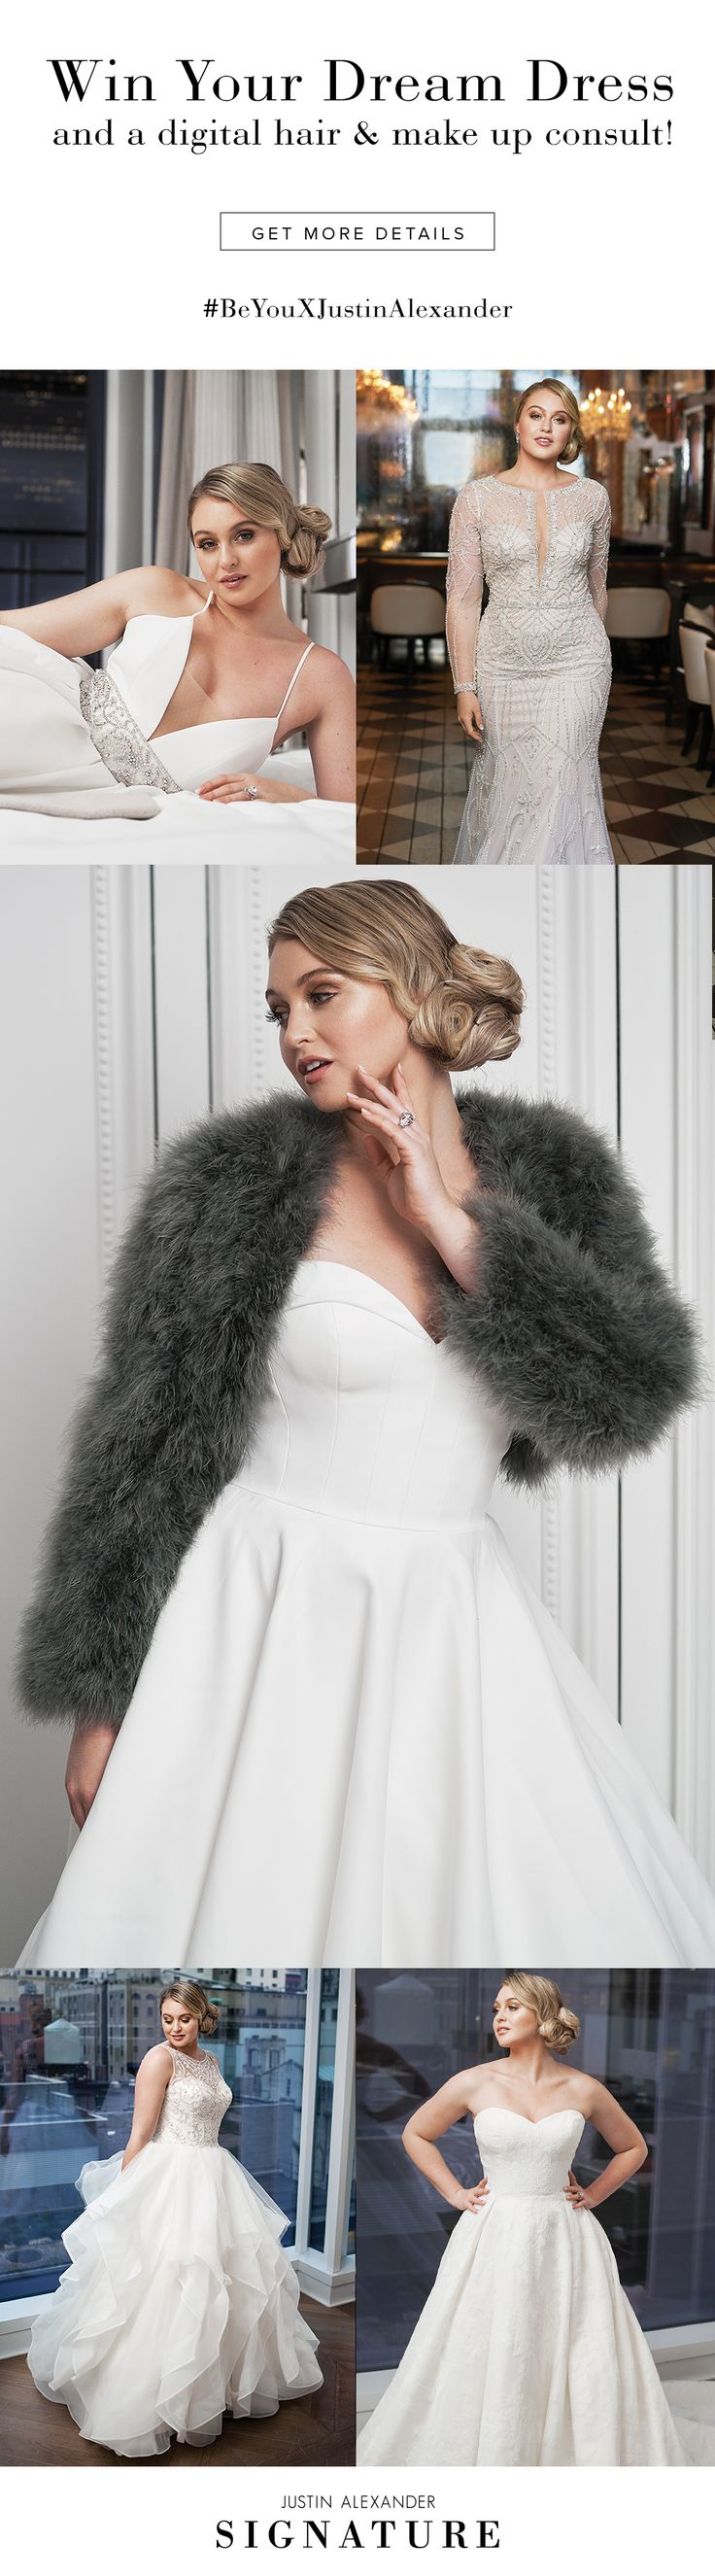 Win a free wedding dress from the Justin Alexander or Justin Alexander Signature collections.  Model: Iskra Lawrence